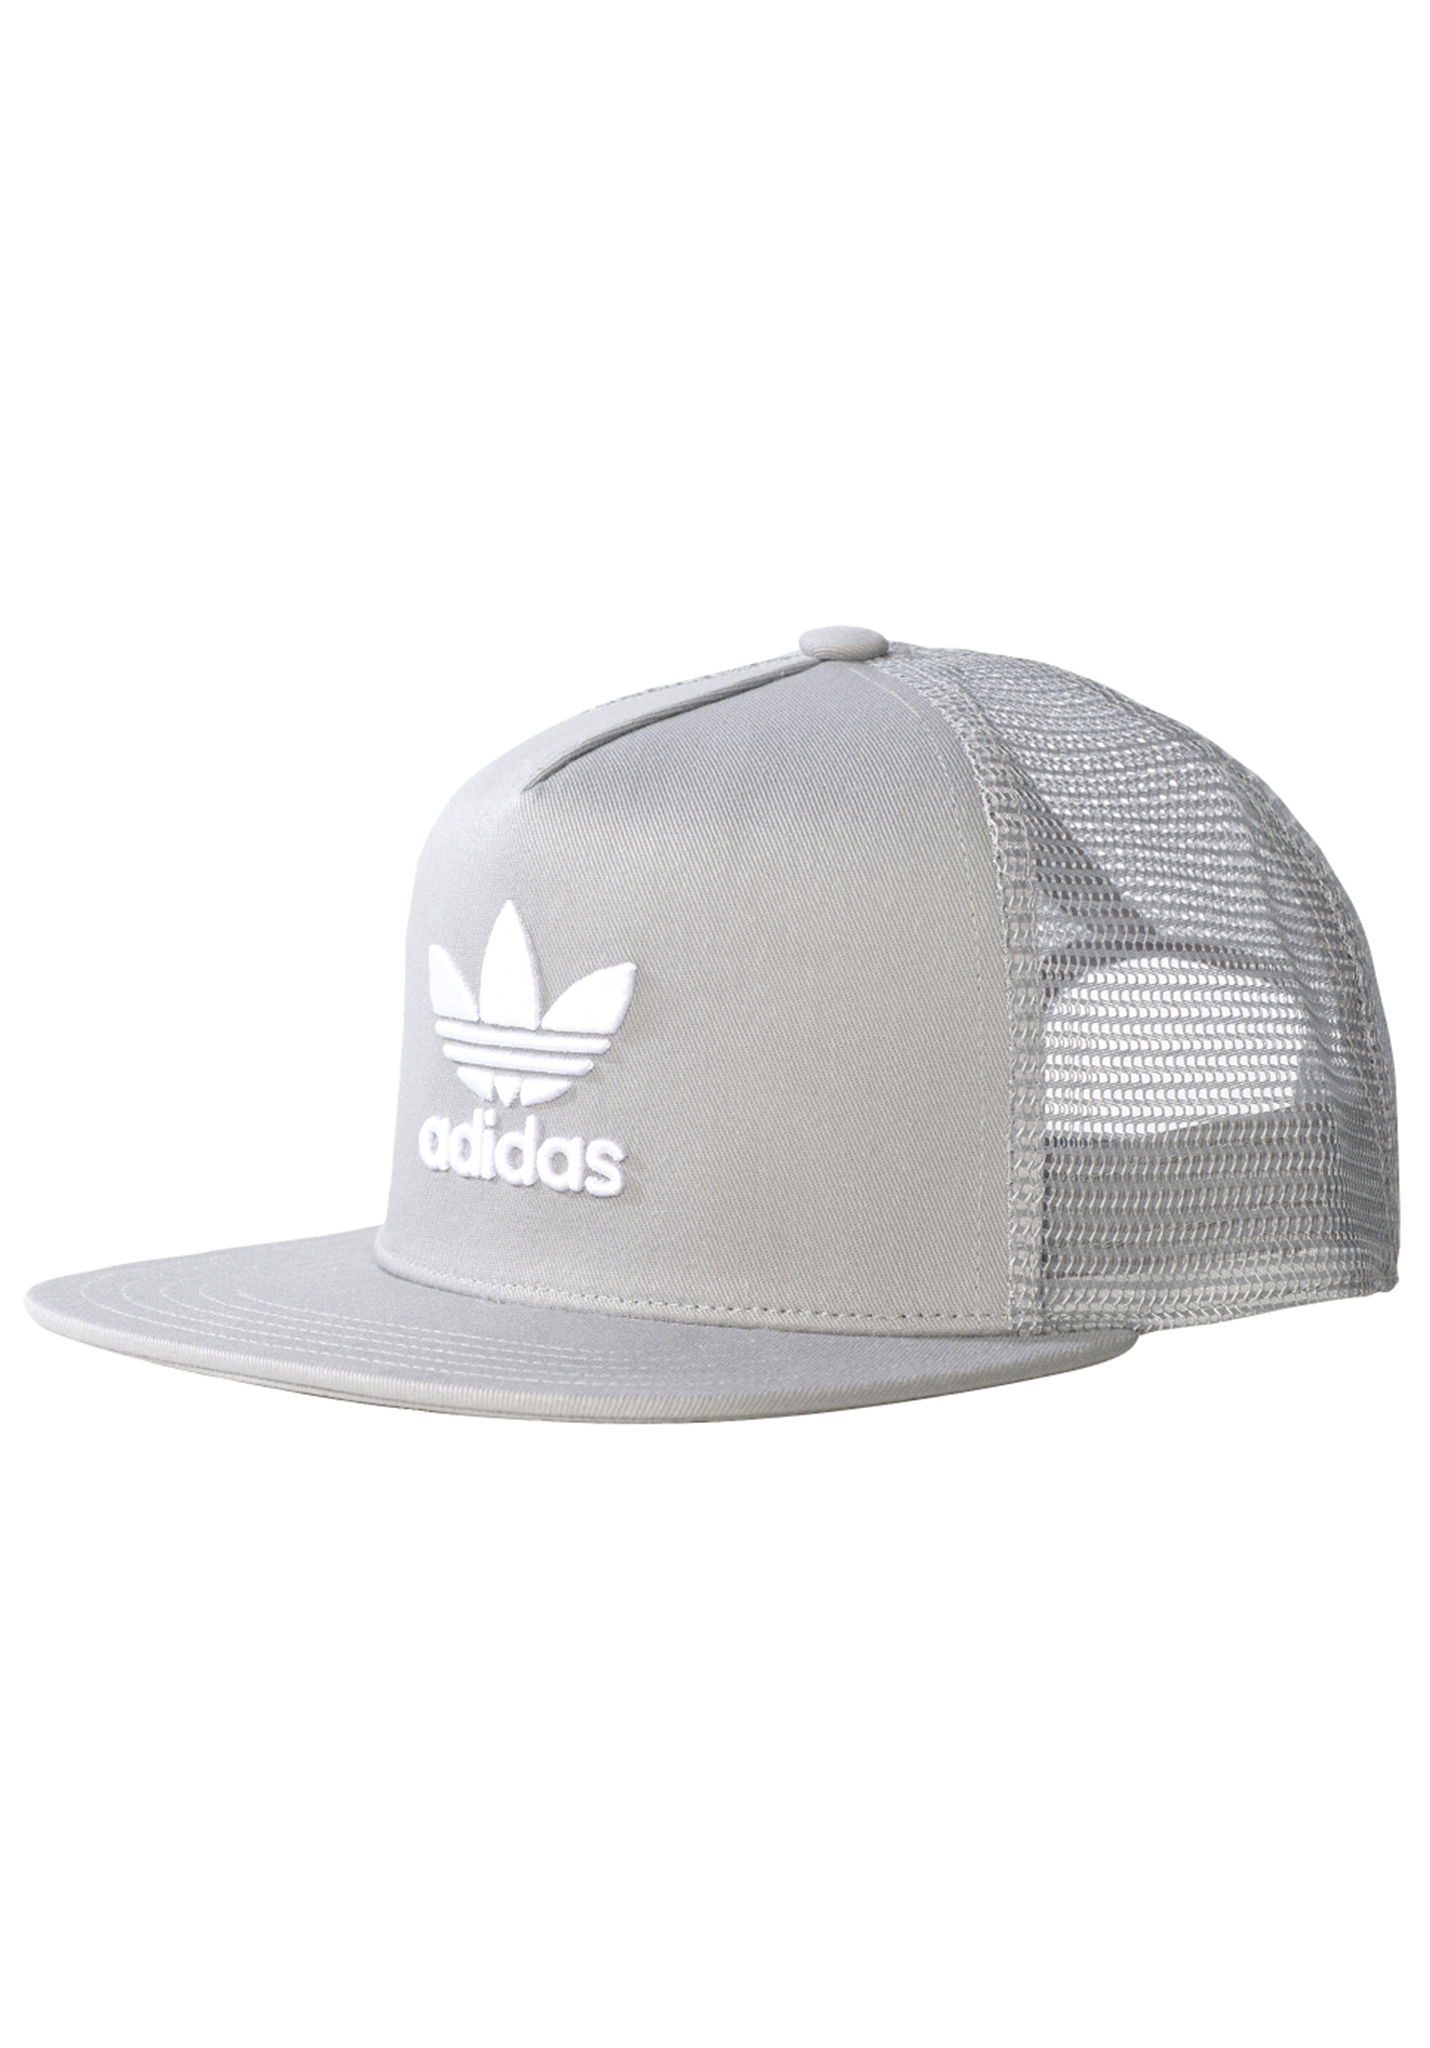 ADIDAS ORIGINALS Trefoil - Trucker Cap - Grey - Planet Sports 305f4c6c5bf